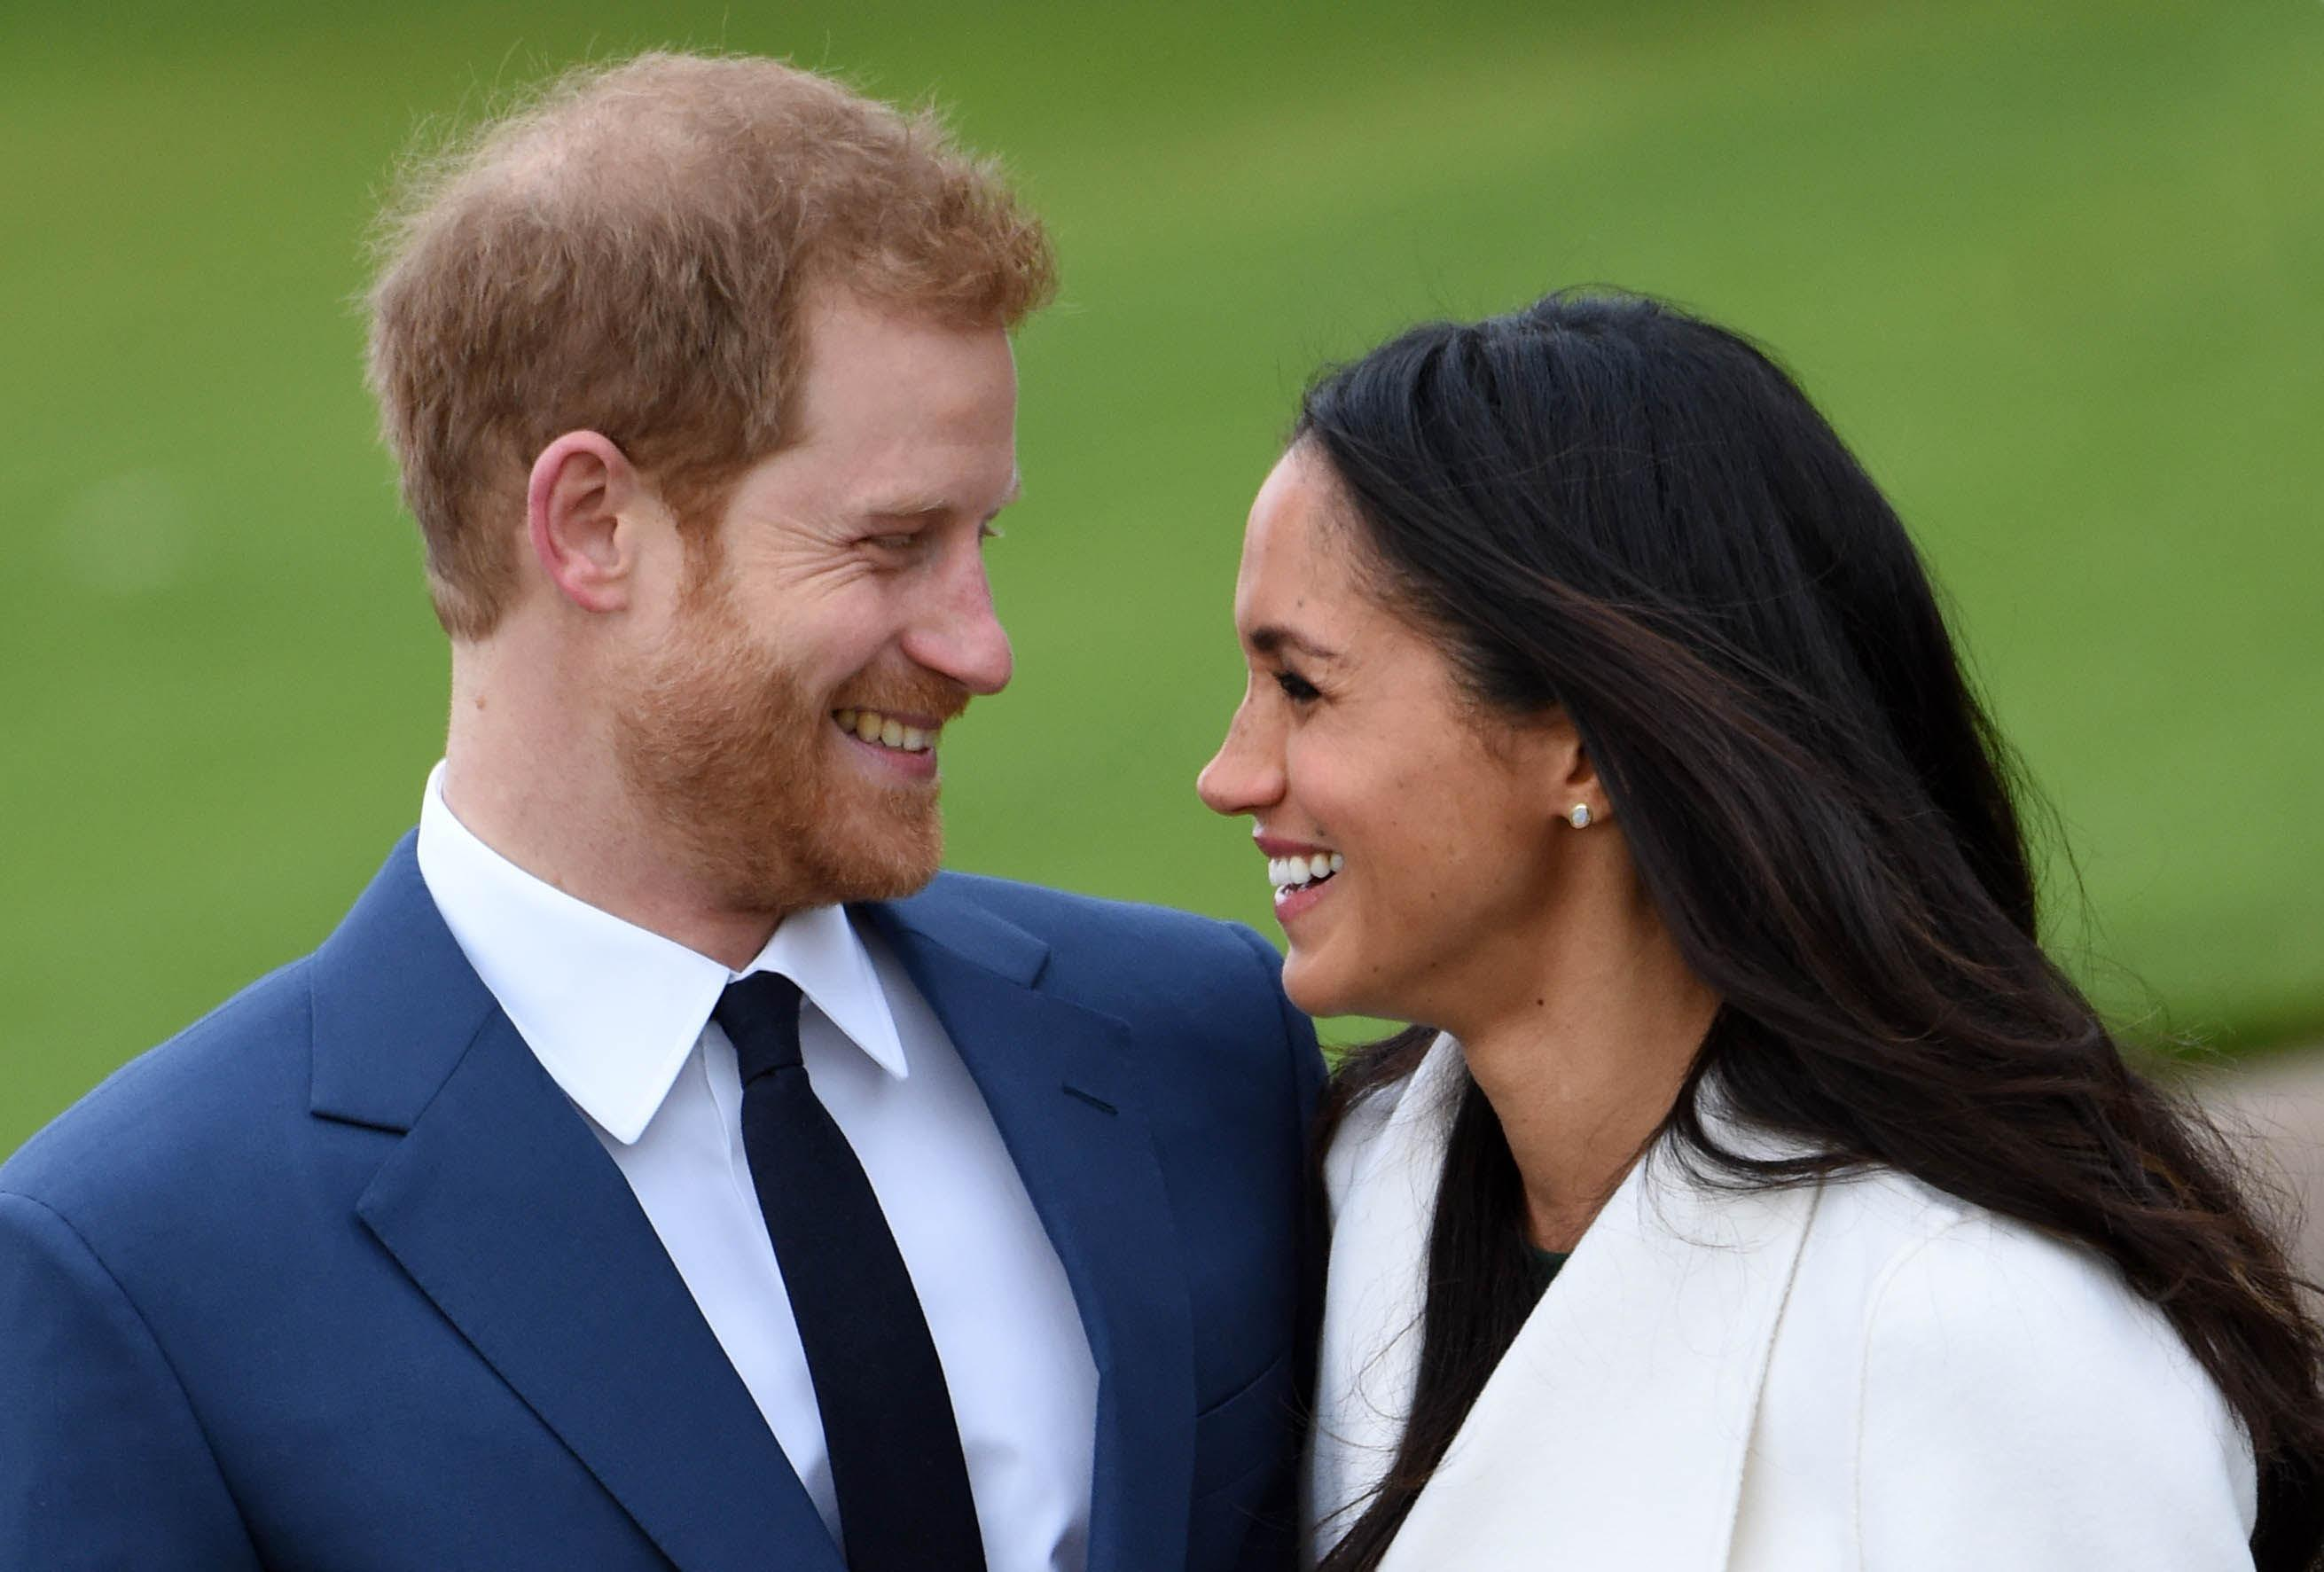 prince harry and meghan markle s wedding date announced cbs news https www cbsnews com news prince harry and meghan markle announce may wedding date